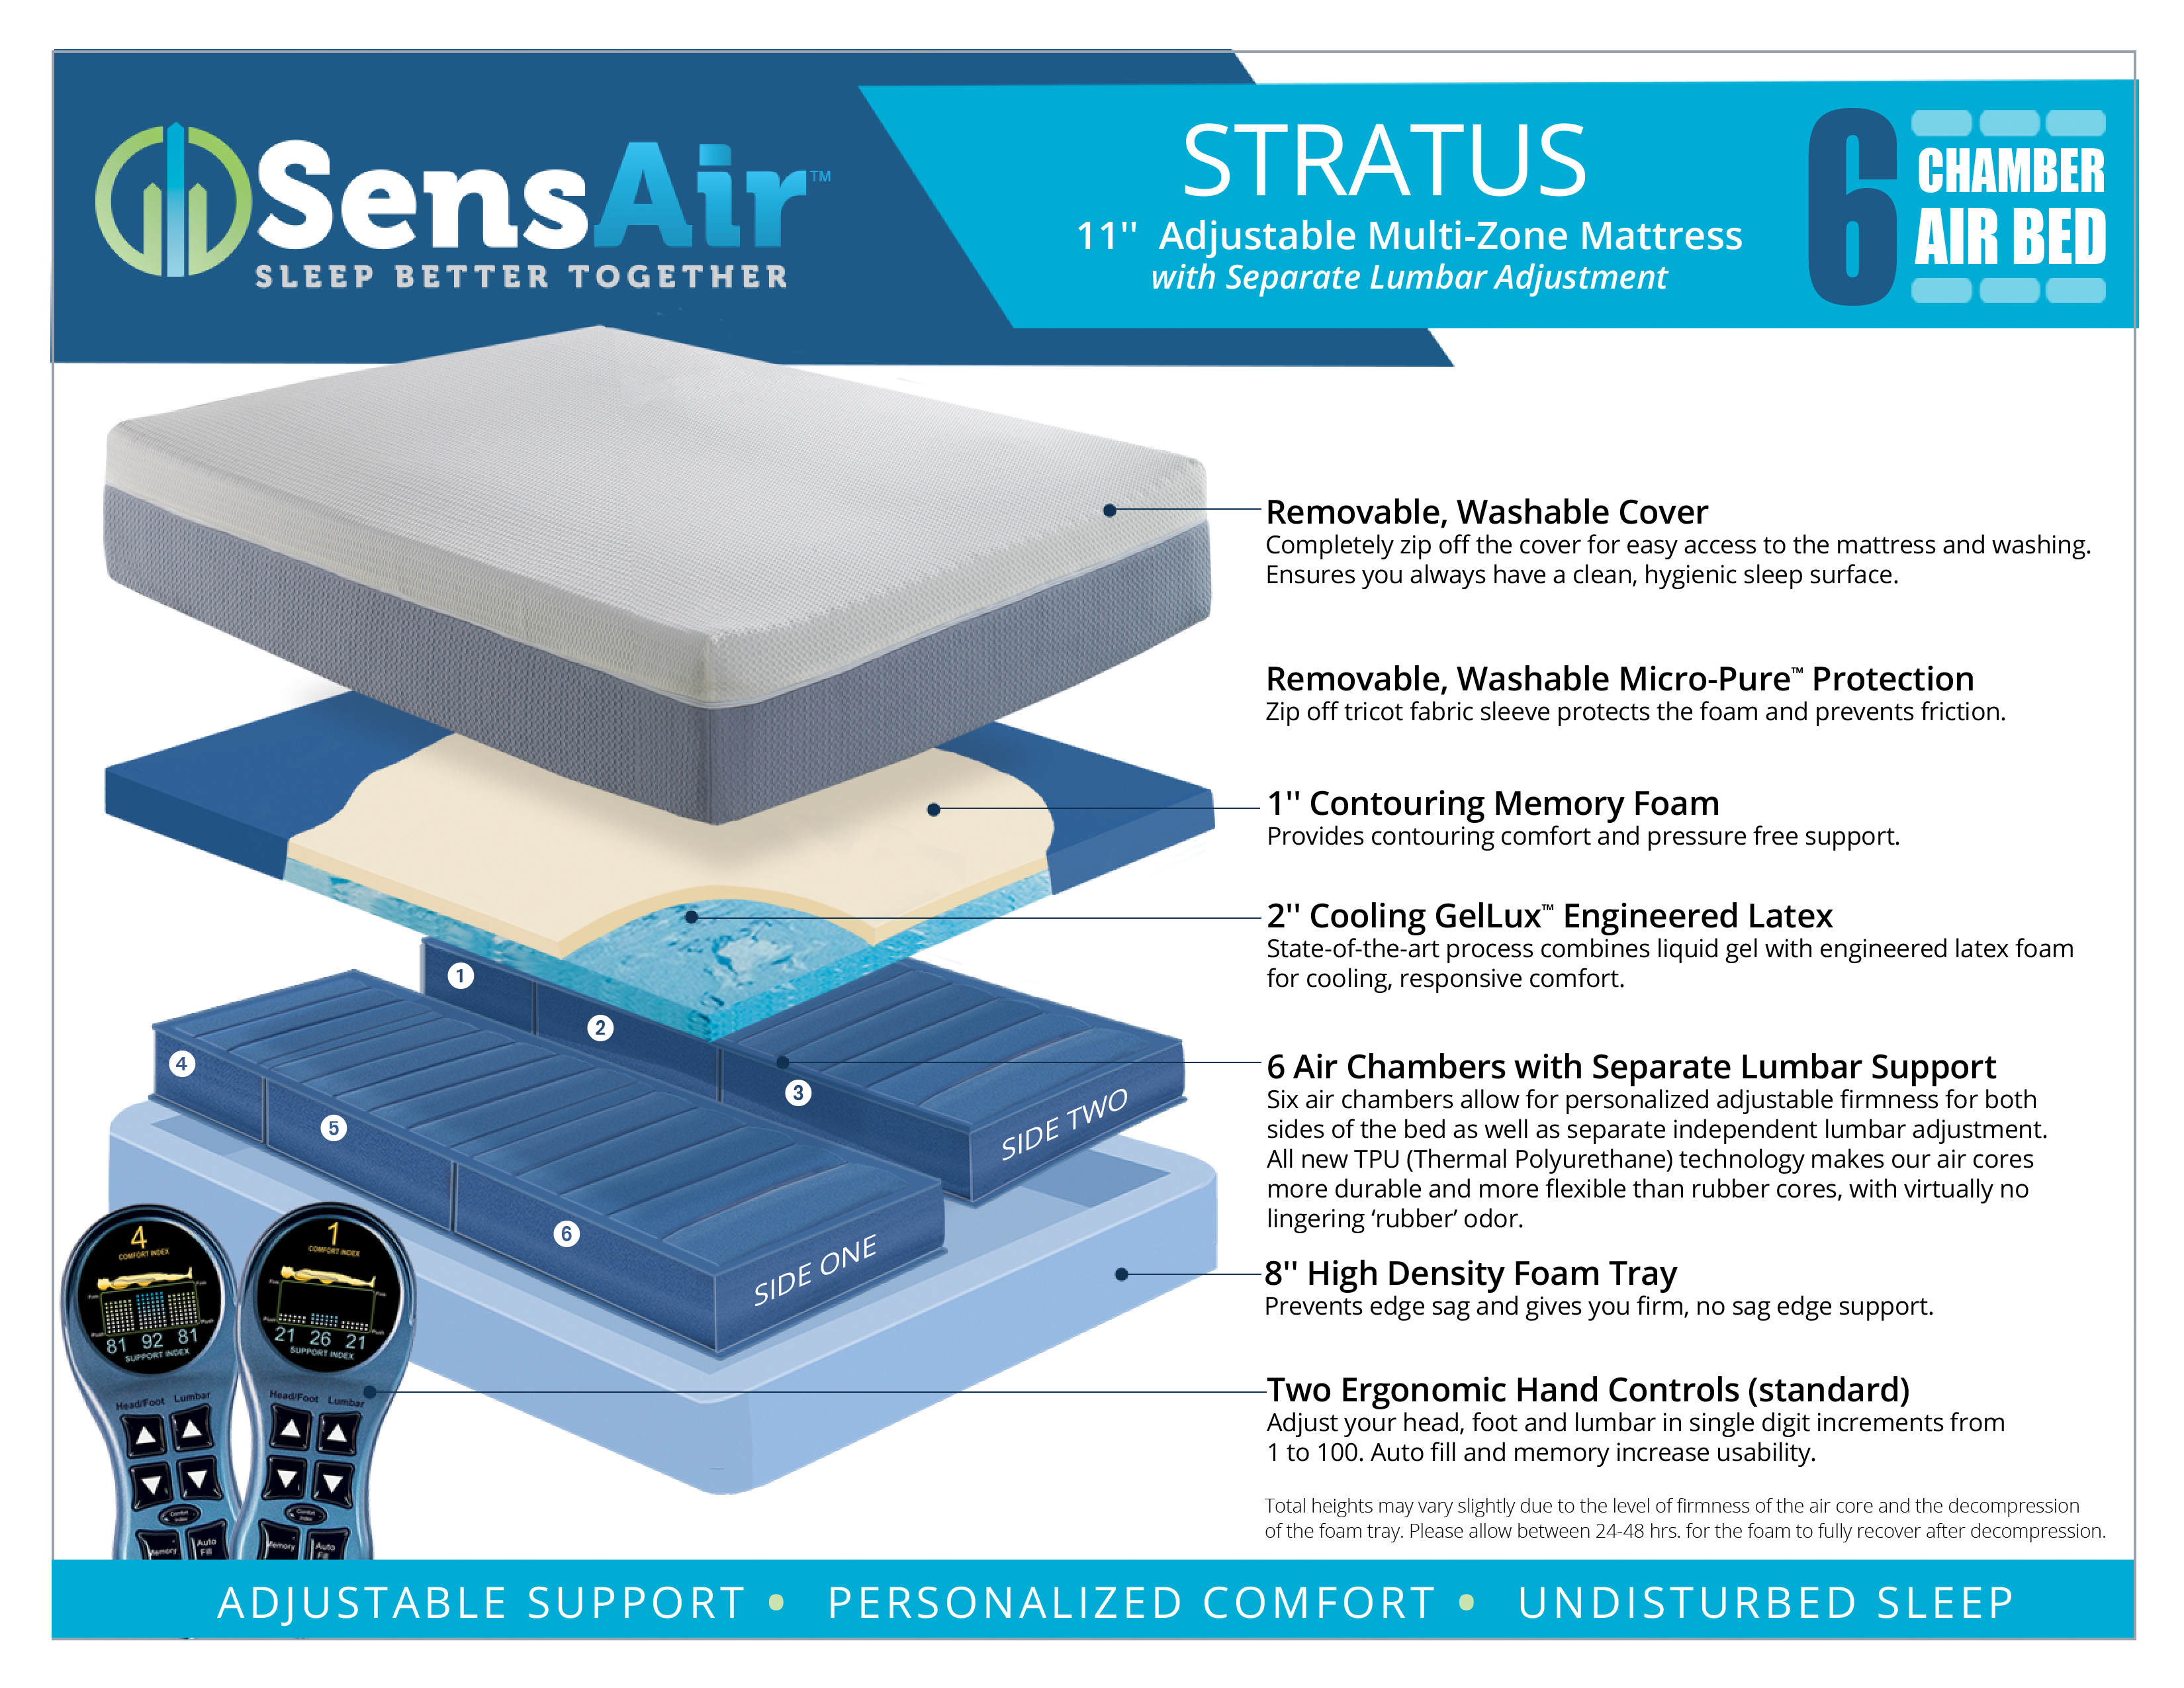 Stratus-6 Chamber.Air.Bed